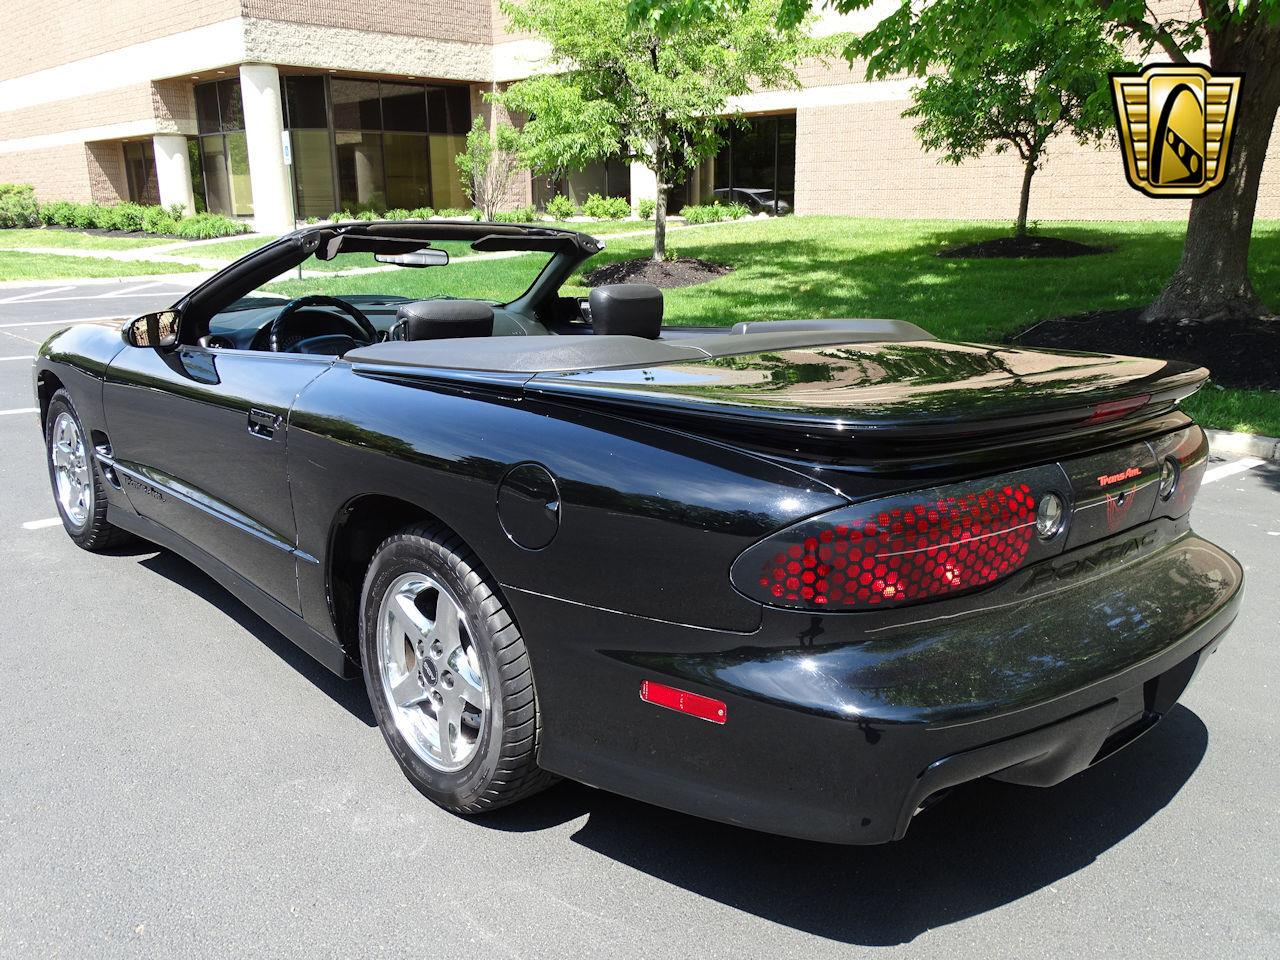 Large Picture of 2000 Firebird located in New Jersey - $17,595.00 - M5ID